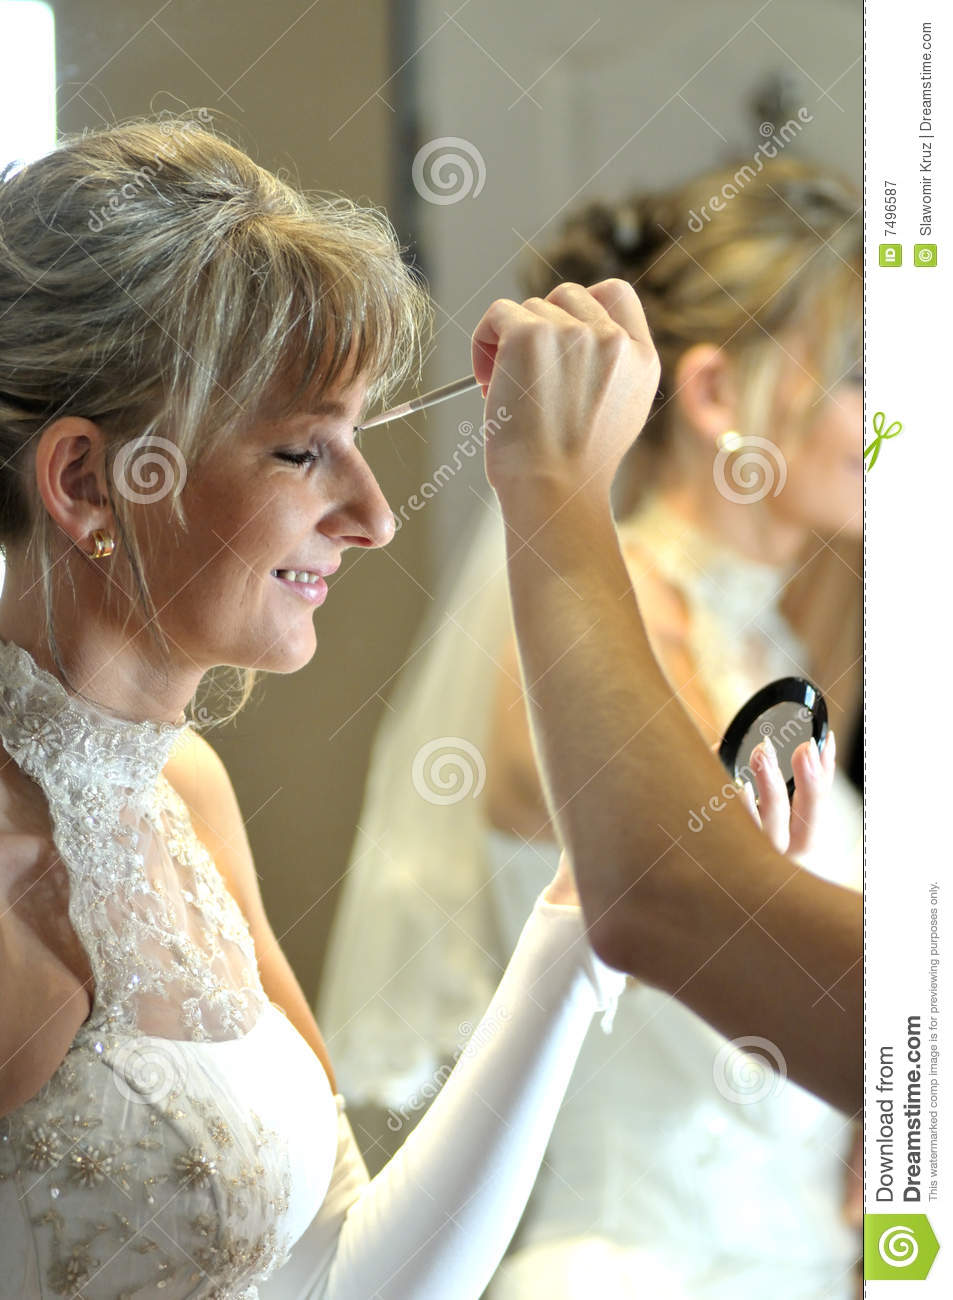 Wedding Makeover Online : Wedding Makeup Royalty Free Stock Photography - Image: 7496587